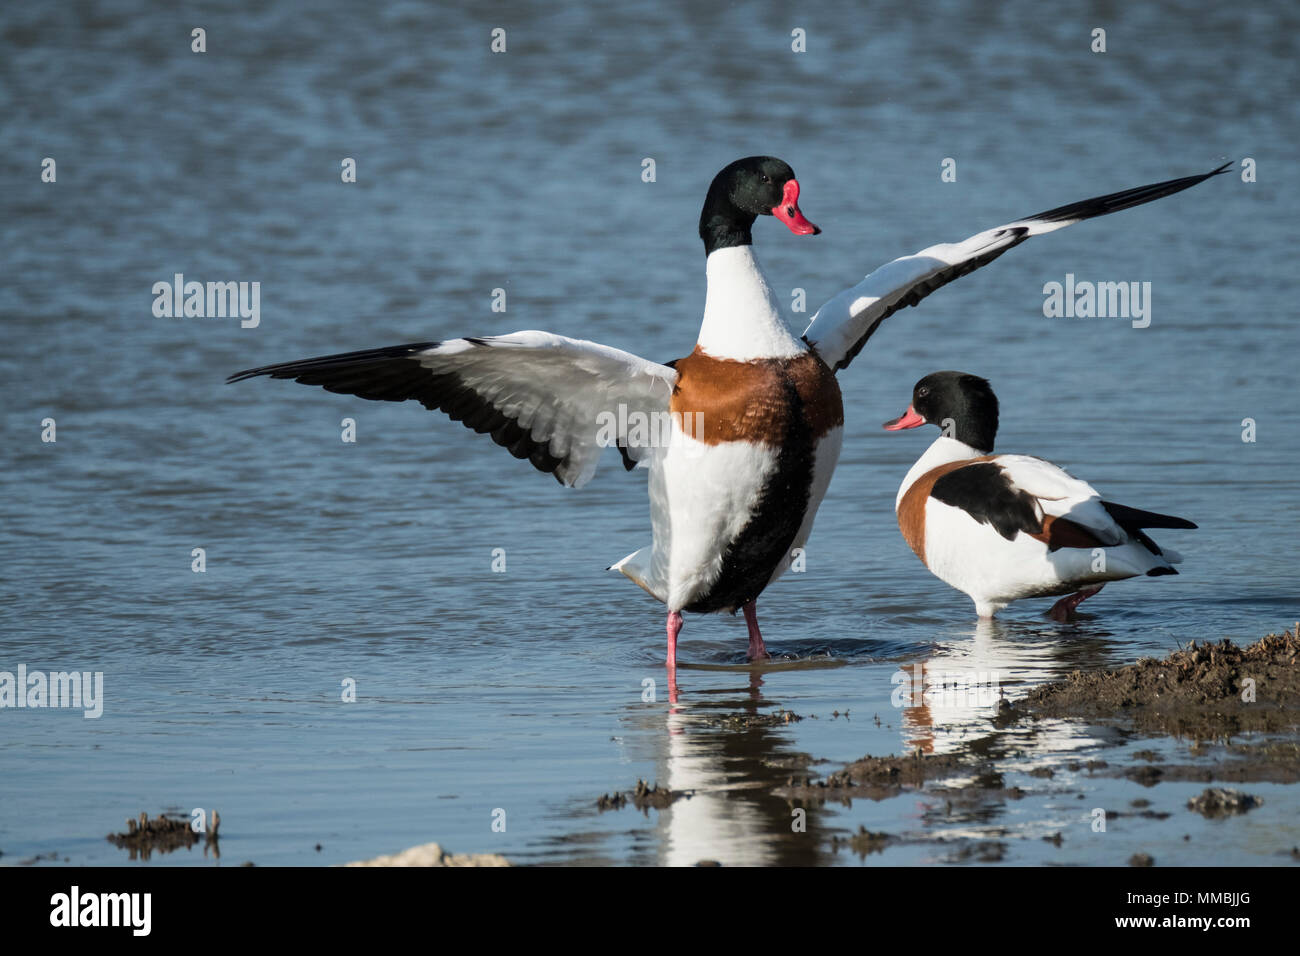 Close up of two Red Billed Ducks in a river, one spreading it's wings. - Stock Image